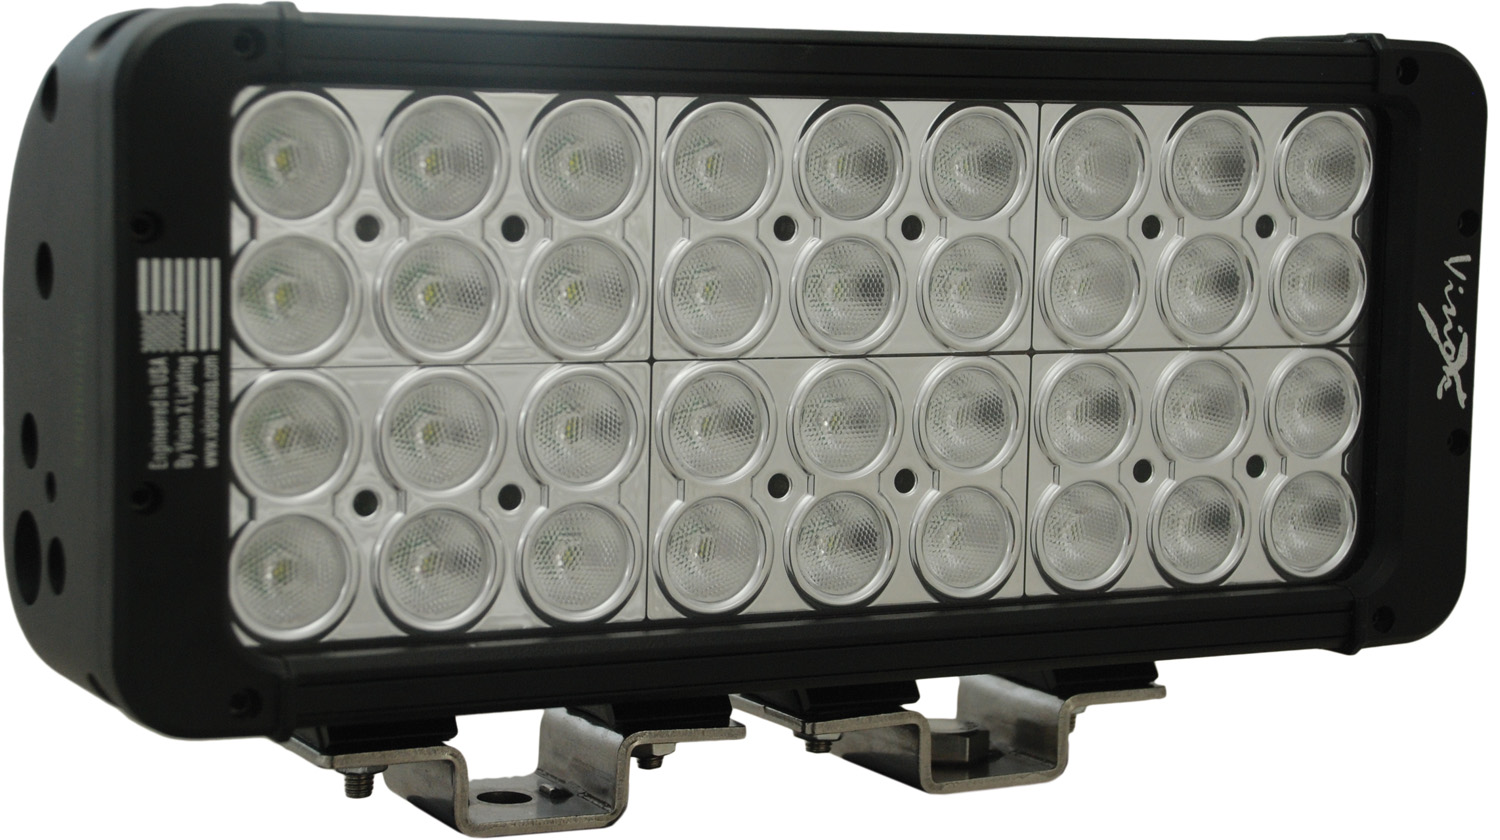 "11"" XMITTER PRIME DOUBLE STACK LED BAR BLACK THIRTY SIX 3-WATT LED'S 40 DEGREE WIDE BEAM"